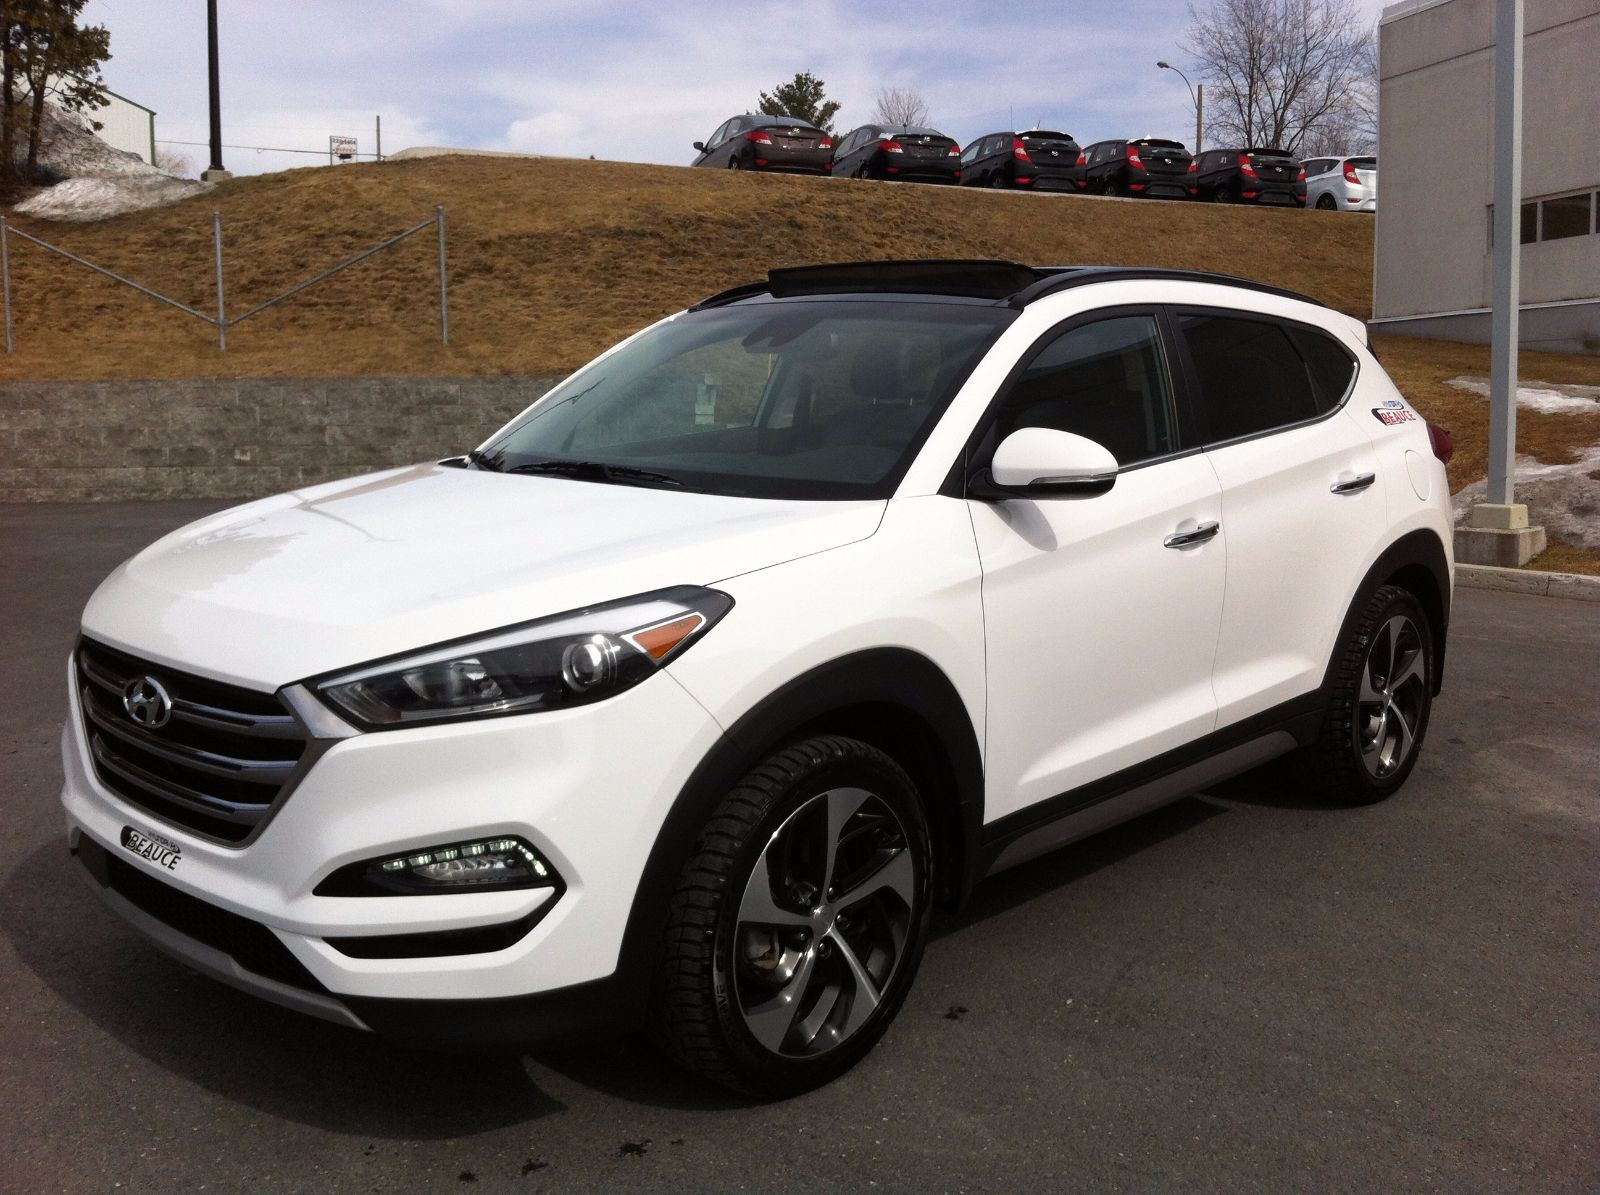 2017 Hyundai Sonata Hybrid >> Used 2017 Hyundai Tucson LIMITED ULTIMATE 1.6T. AWD in Saint-Georges - Used inventory - Hyundai ...